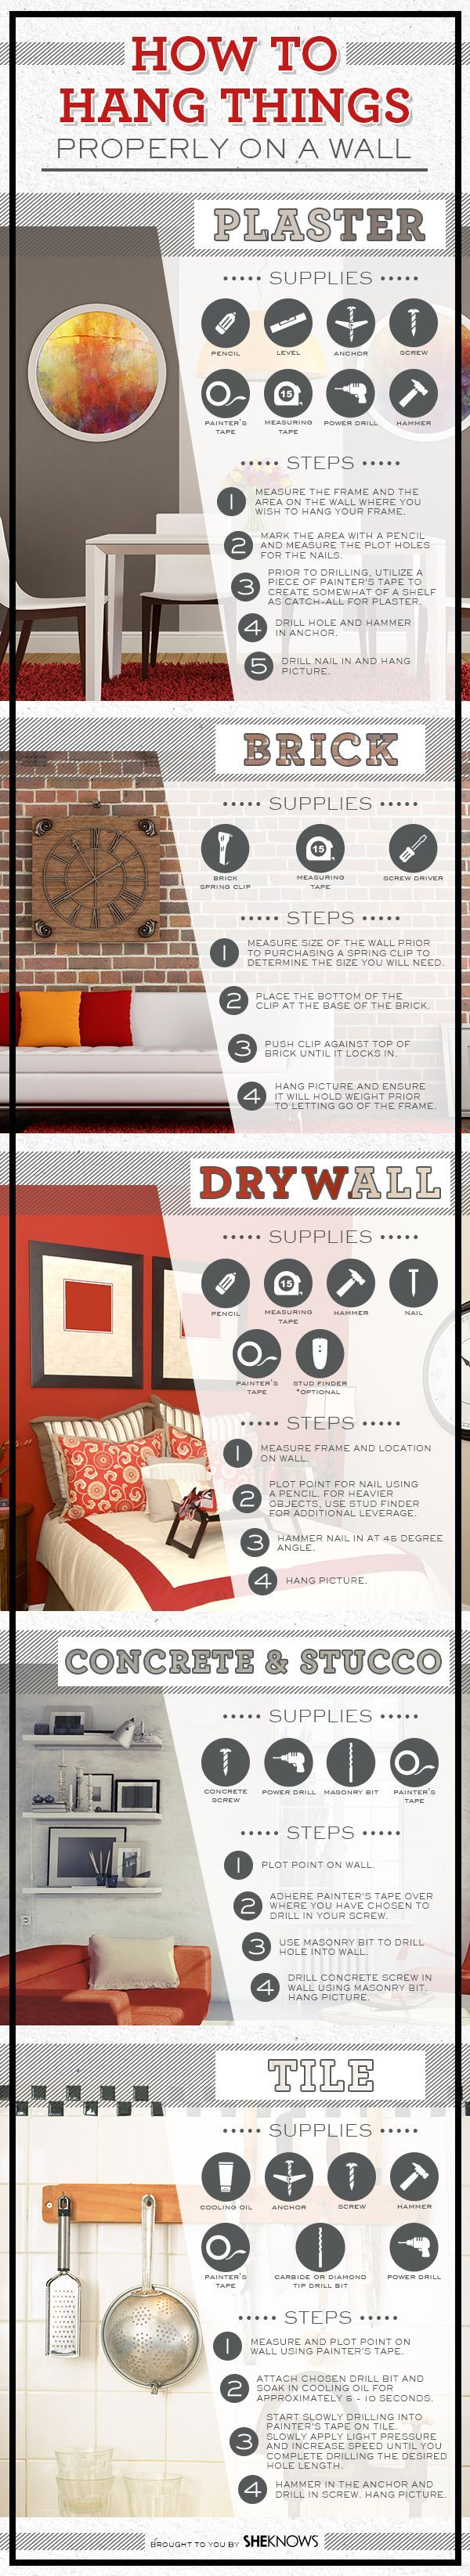 . #Easy_Home_Decorating_Guide #Professional_Home_Decorating_Guide #Home_Decorating_Guide_Ideas #Best_Home_Decorating